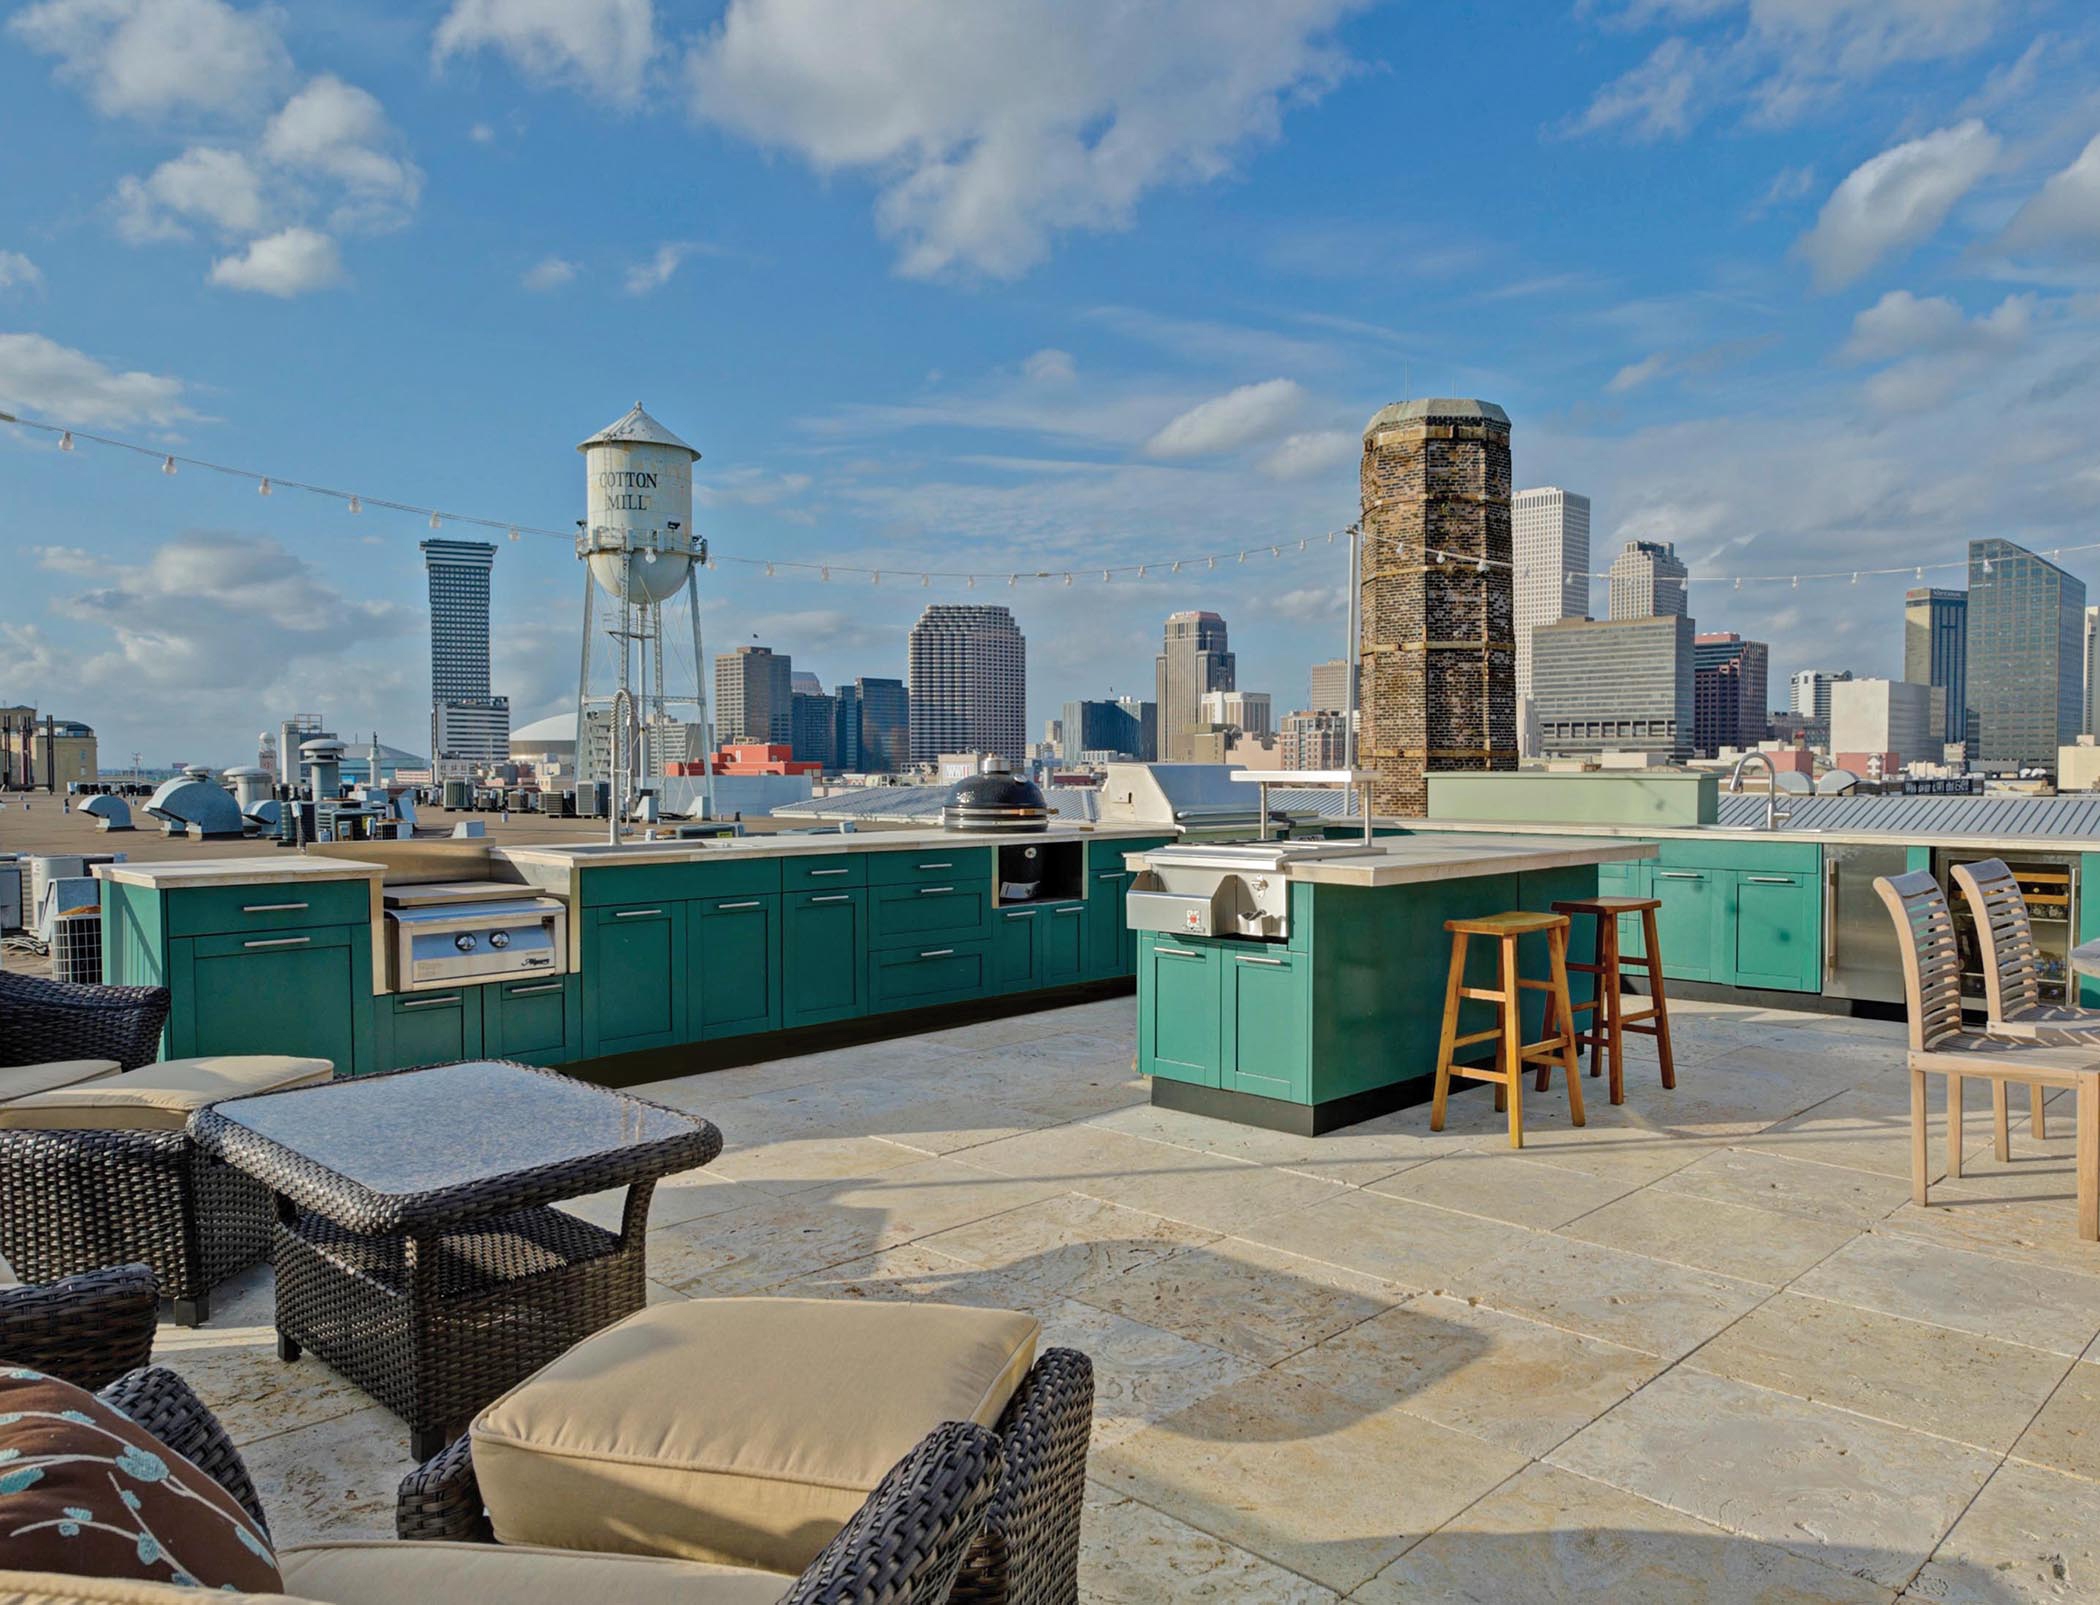 Rooftop Outdoor Kitchens in Urban Spaces | Commercial Construction ...